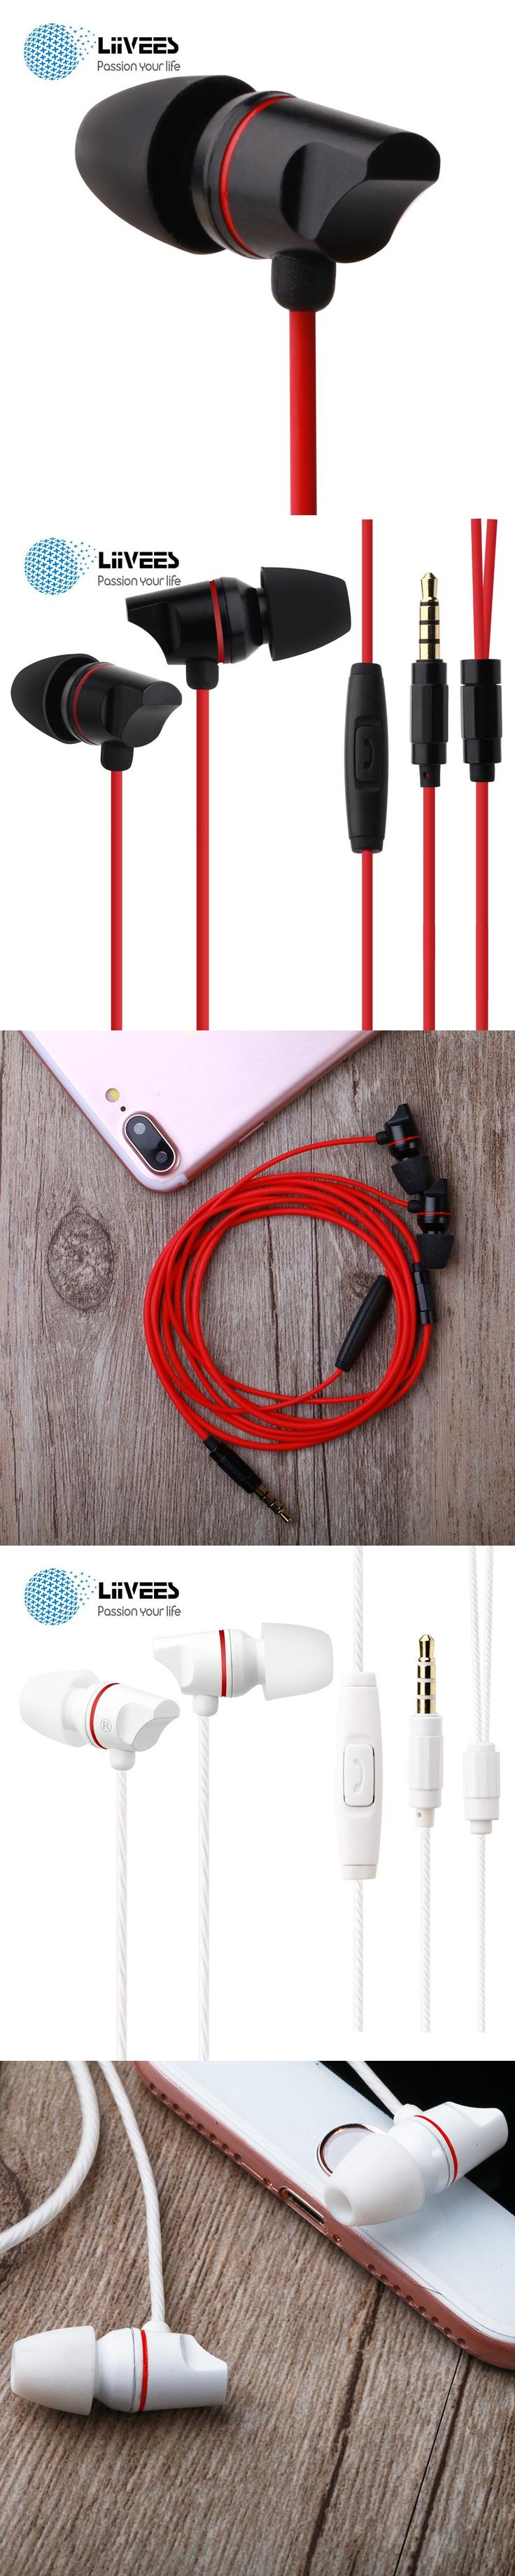 LiiVEES M12 In ear HIFI Earphones Sport gaming Wired Headset Stereo Bass beatsstudio With Mic fairy tail fashion earbuds for ps4